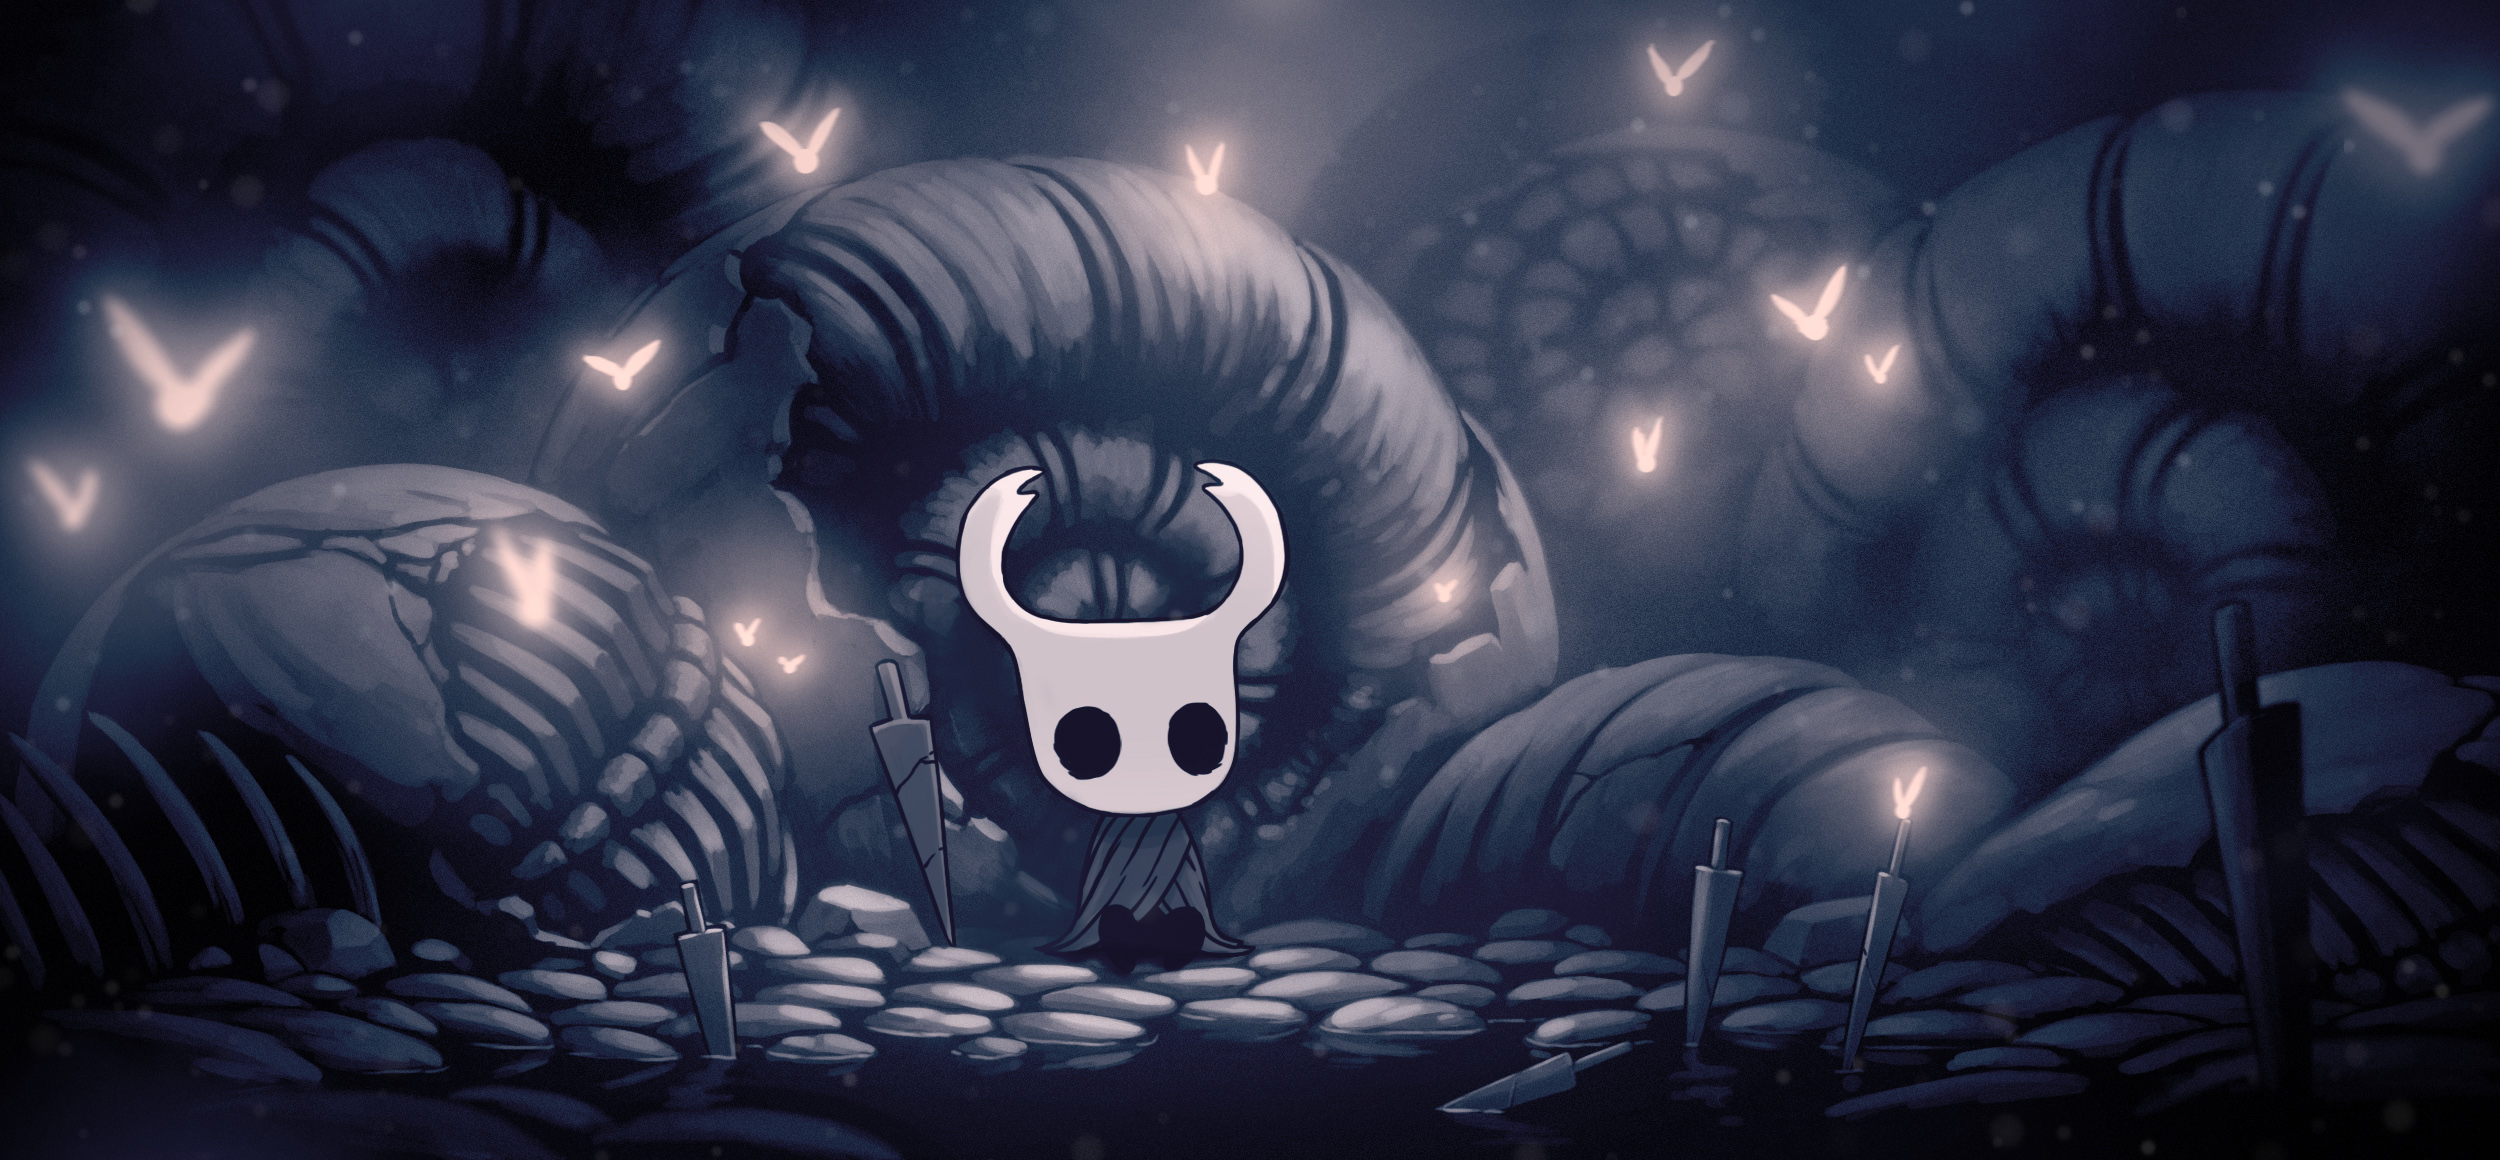 Hollow_Knight_at_rest